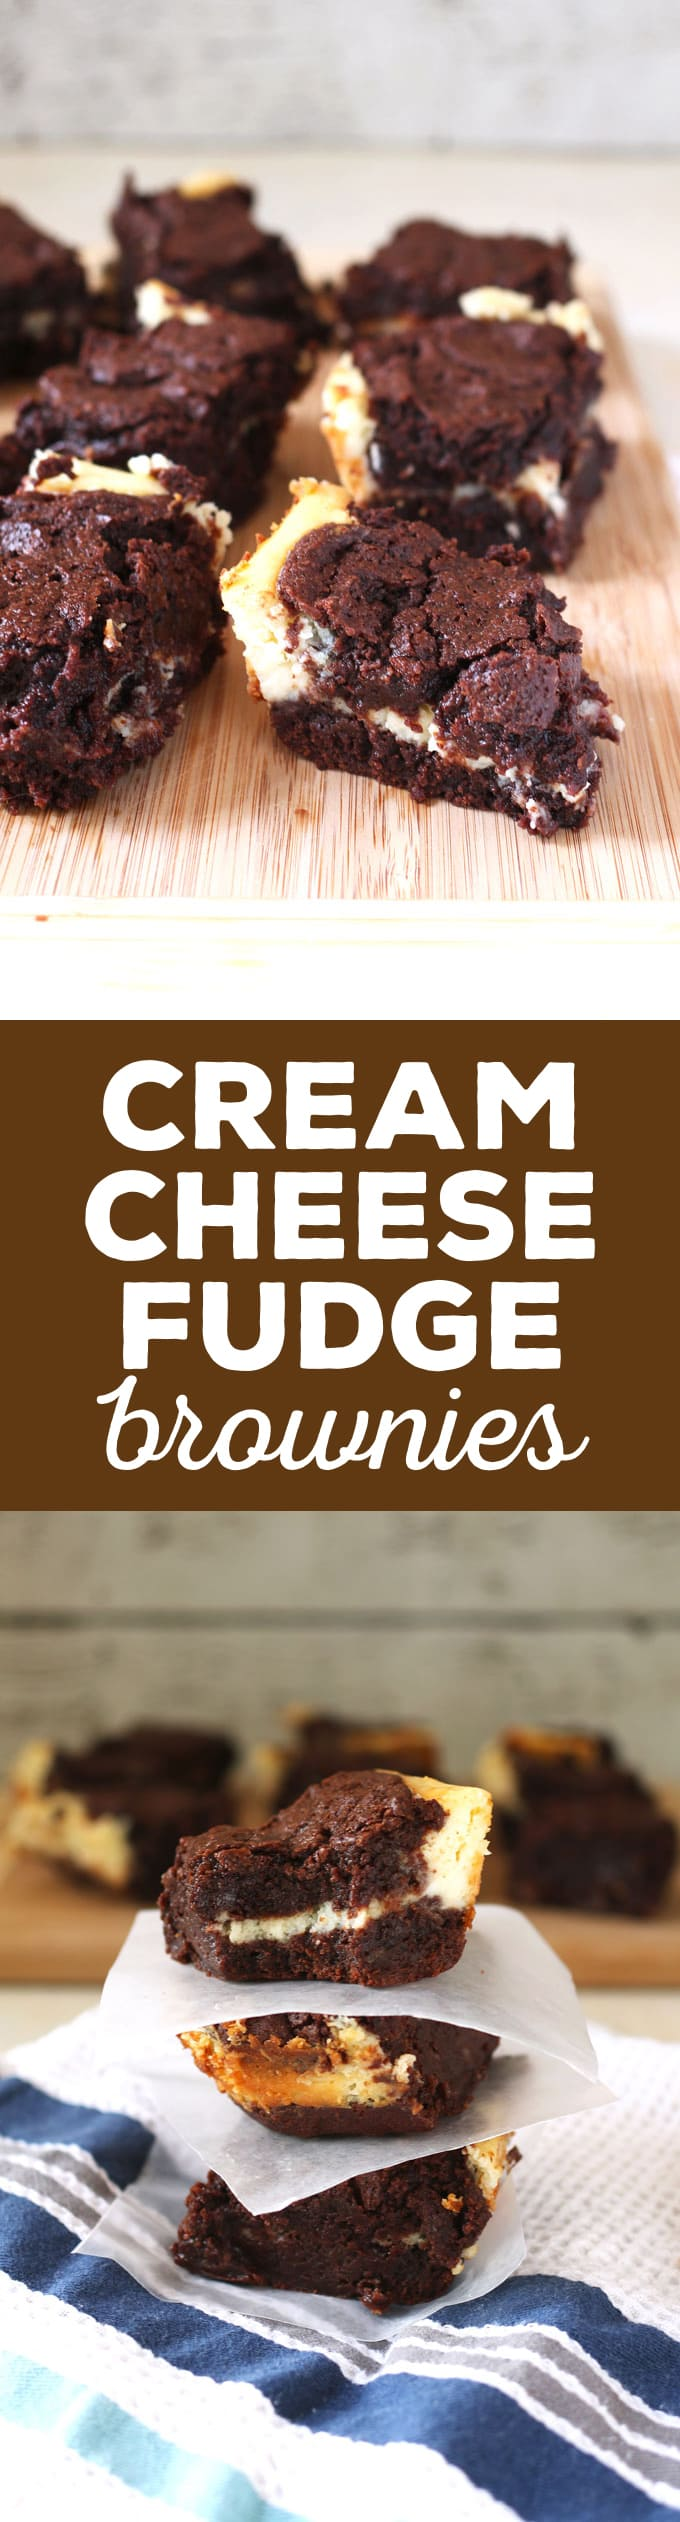 cream cheese fudge brownies pin